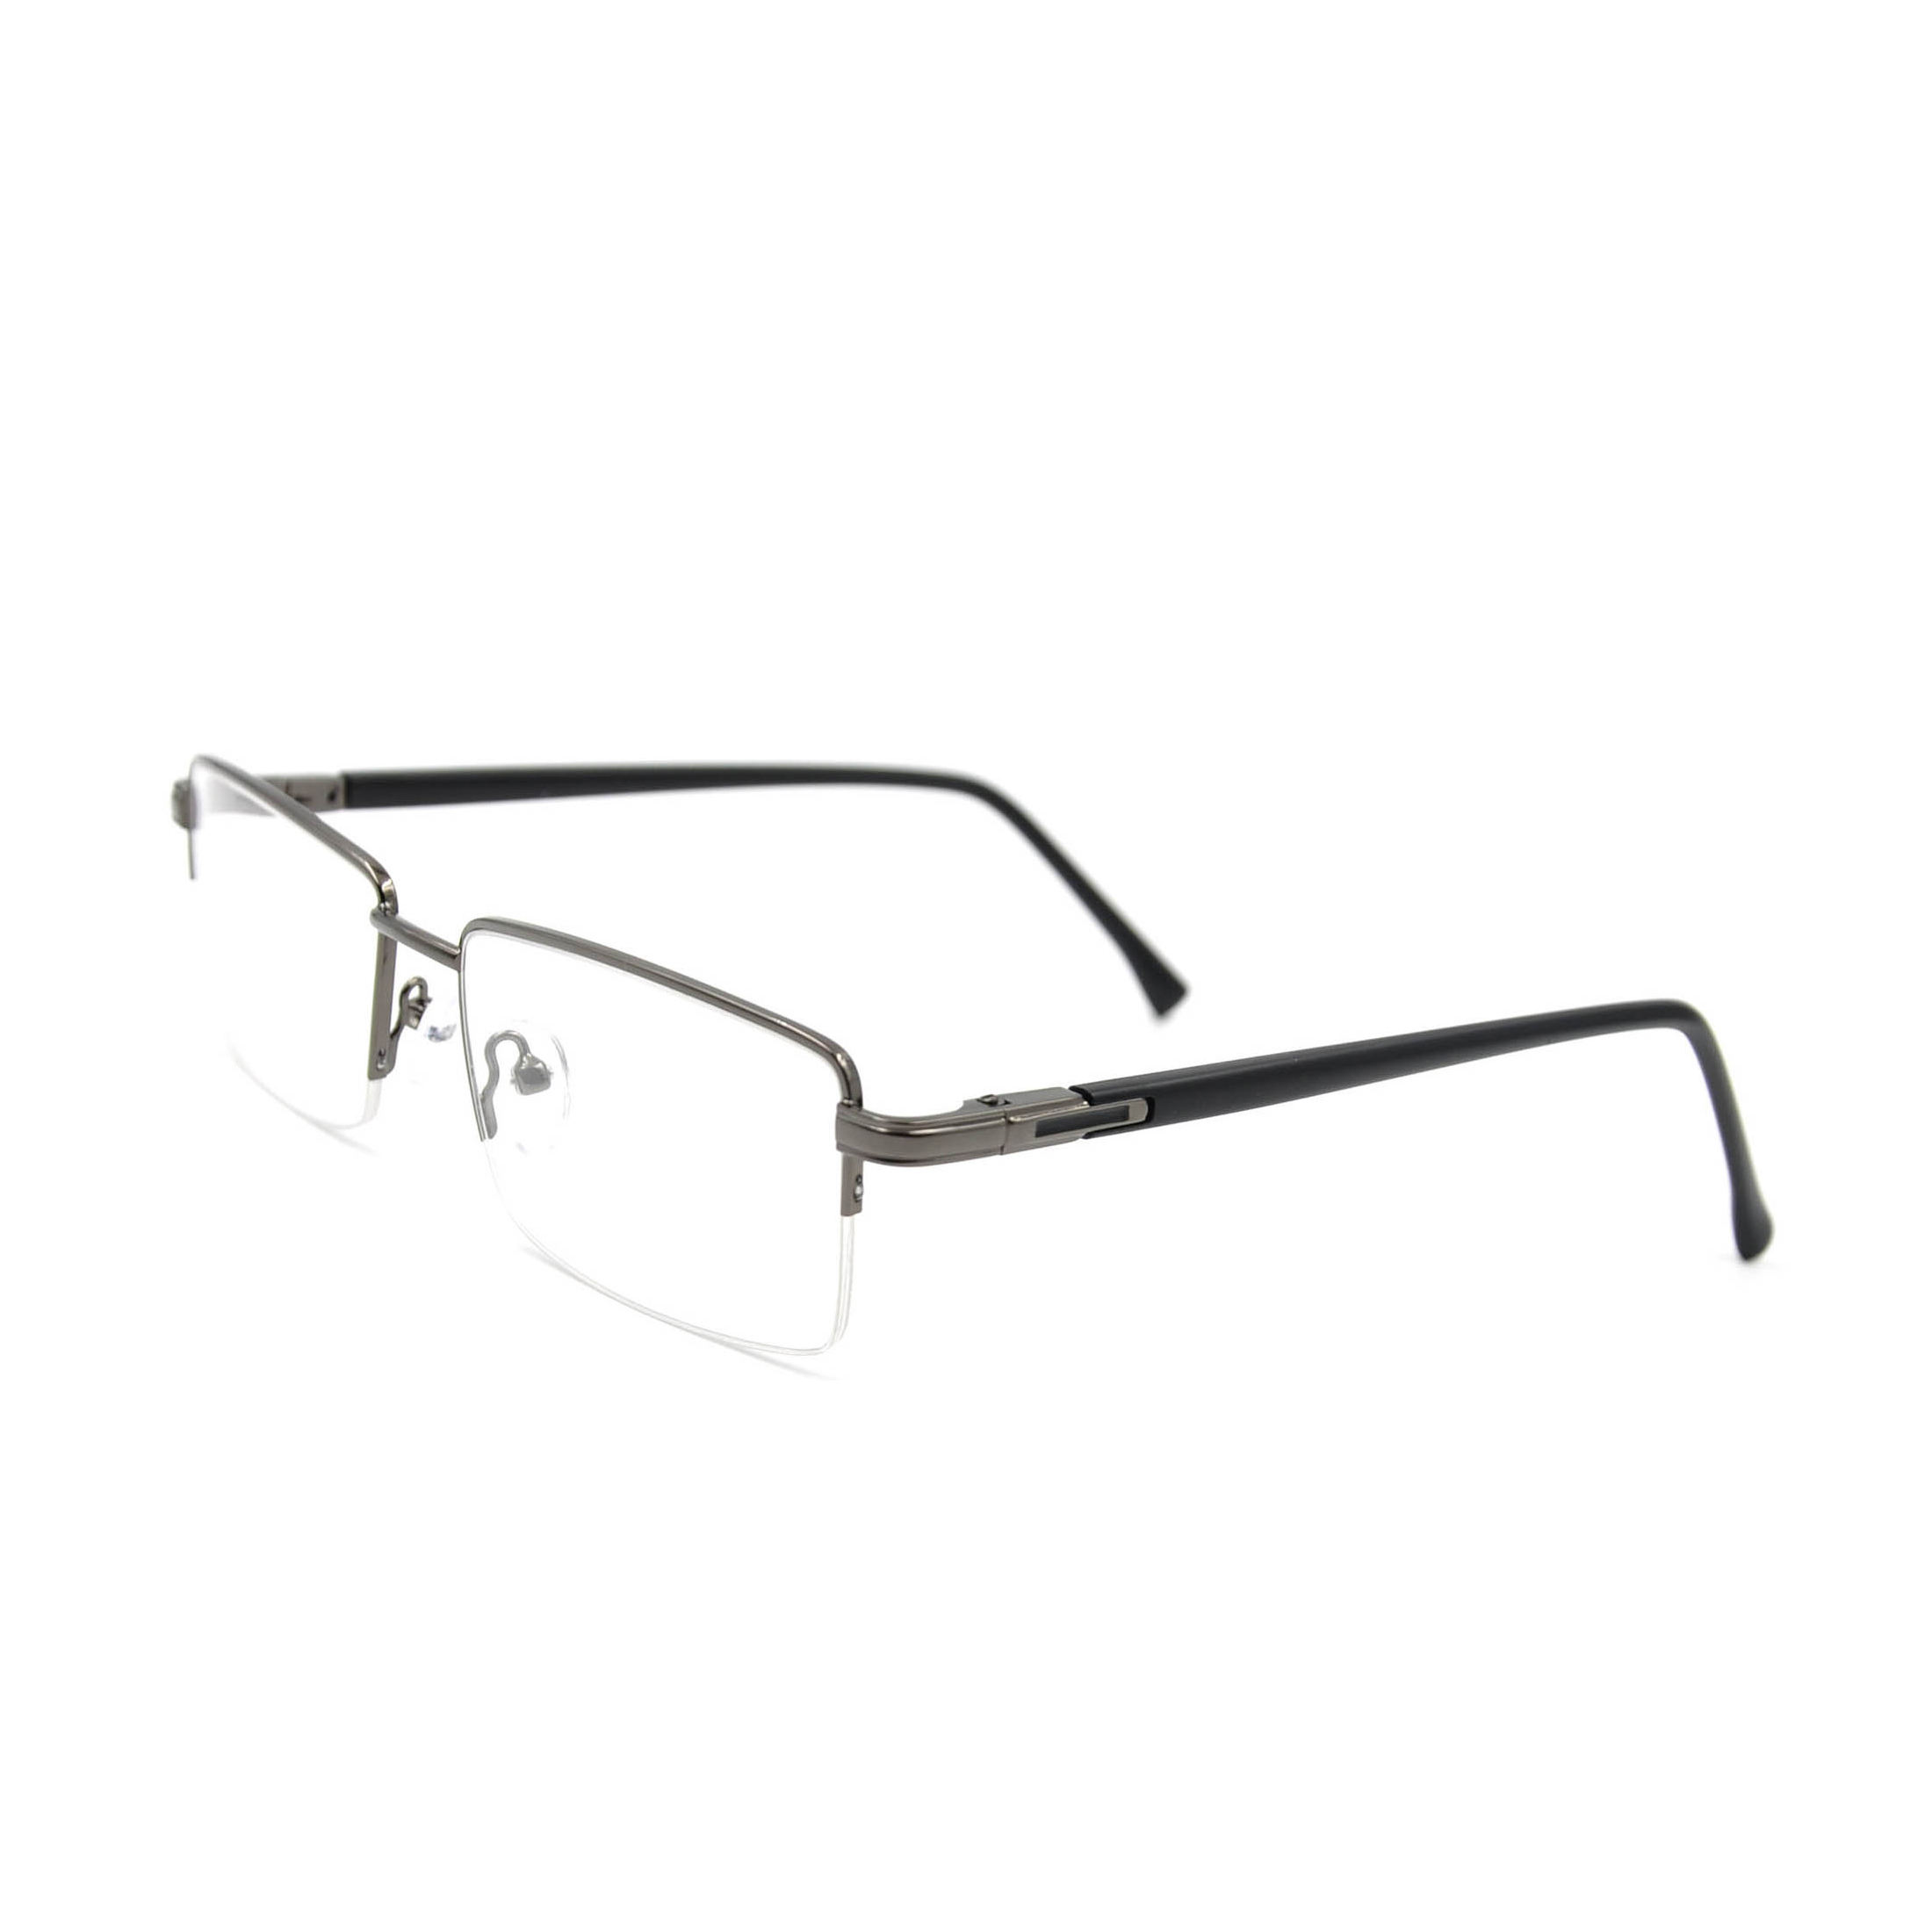 Promotion cheap customized logo metal eyeglasses frames reading glasses for men